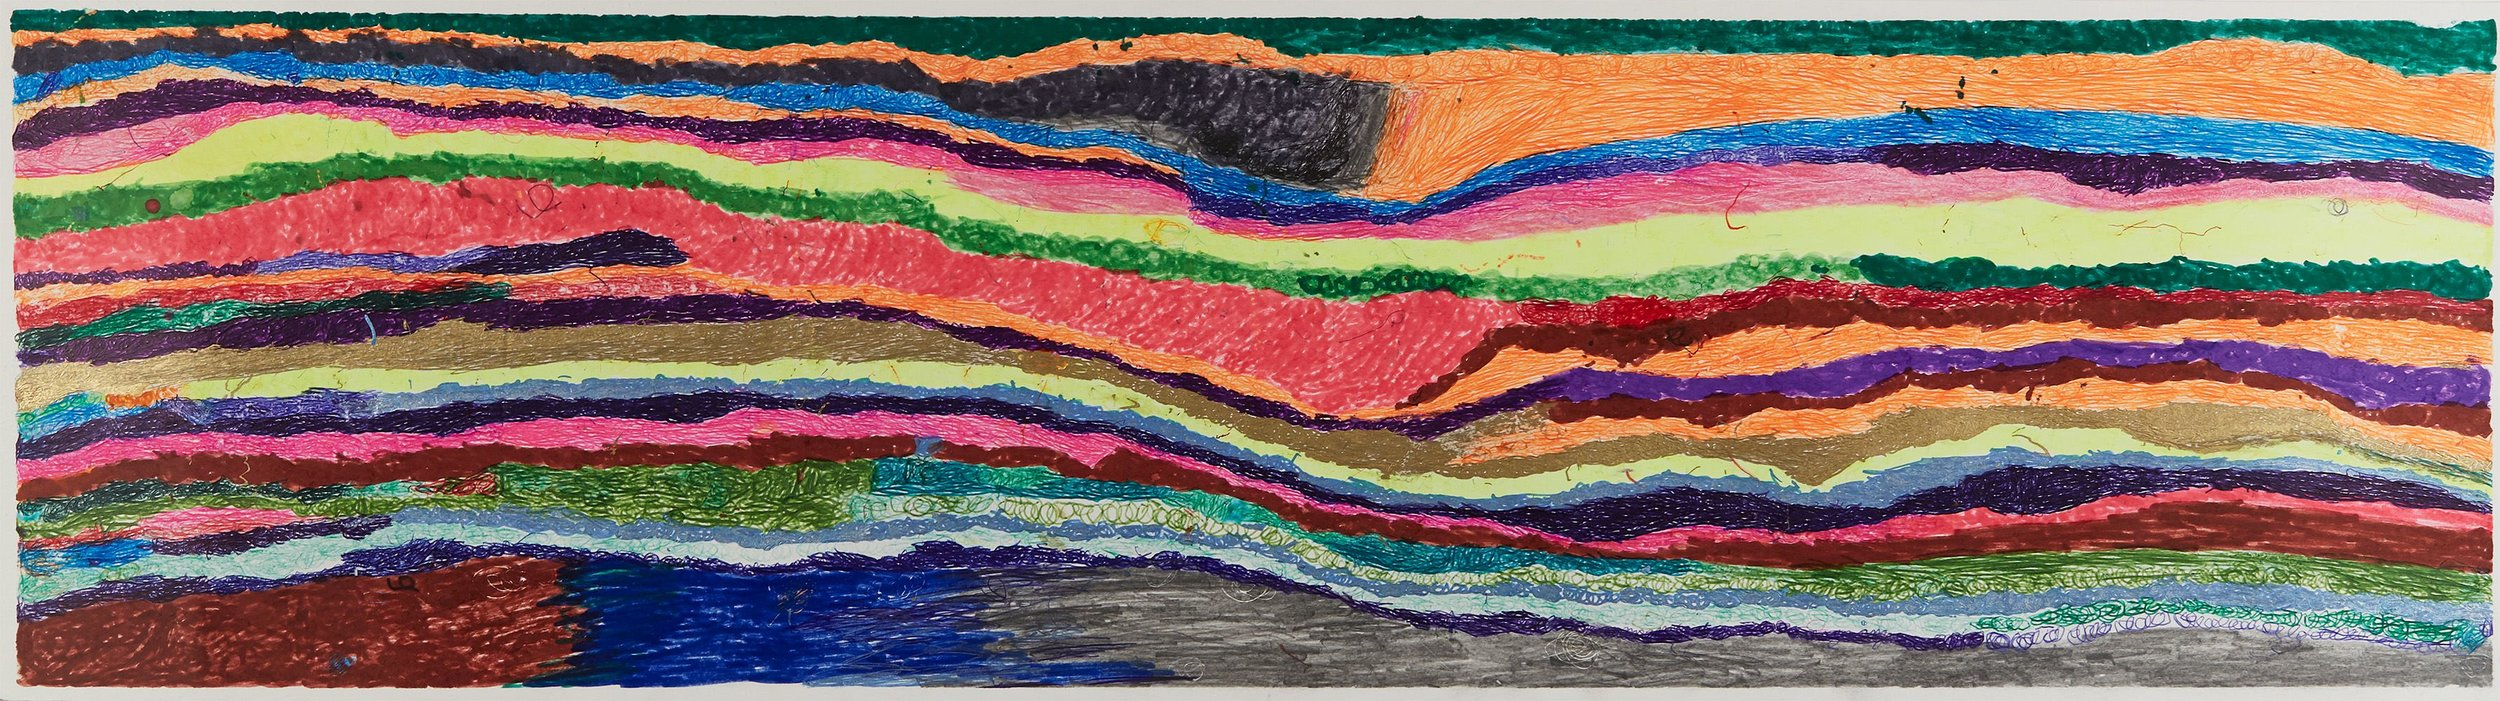 Joseph Lambert  Untitled  , 2017 Ink, marker, pencil, crayon on paper 9.45 x 33.66 inches 24 x 85.5 cm JLam 28